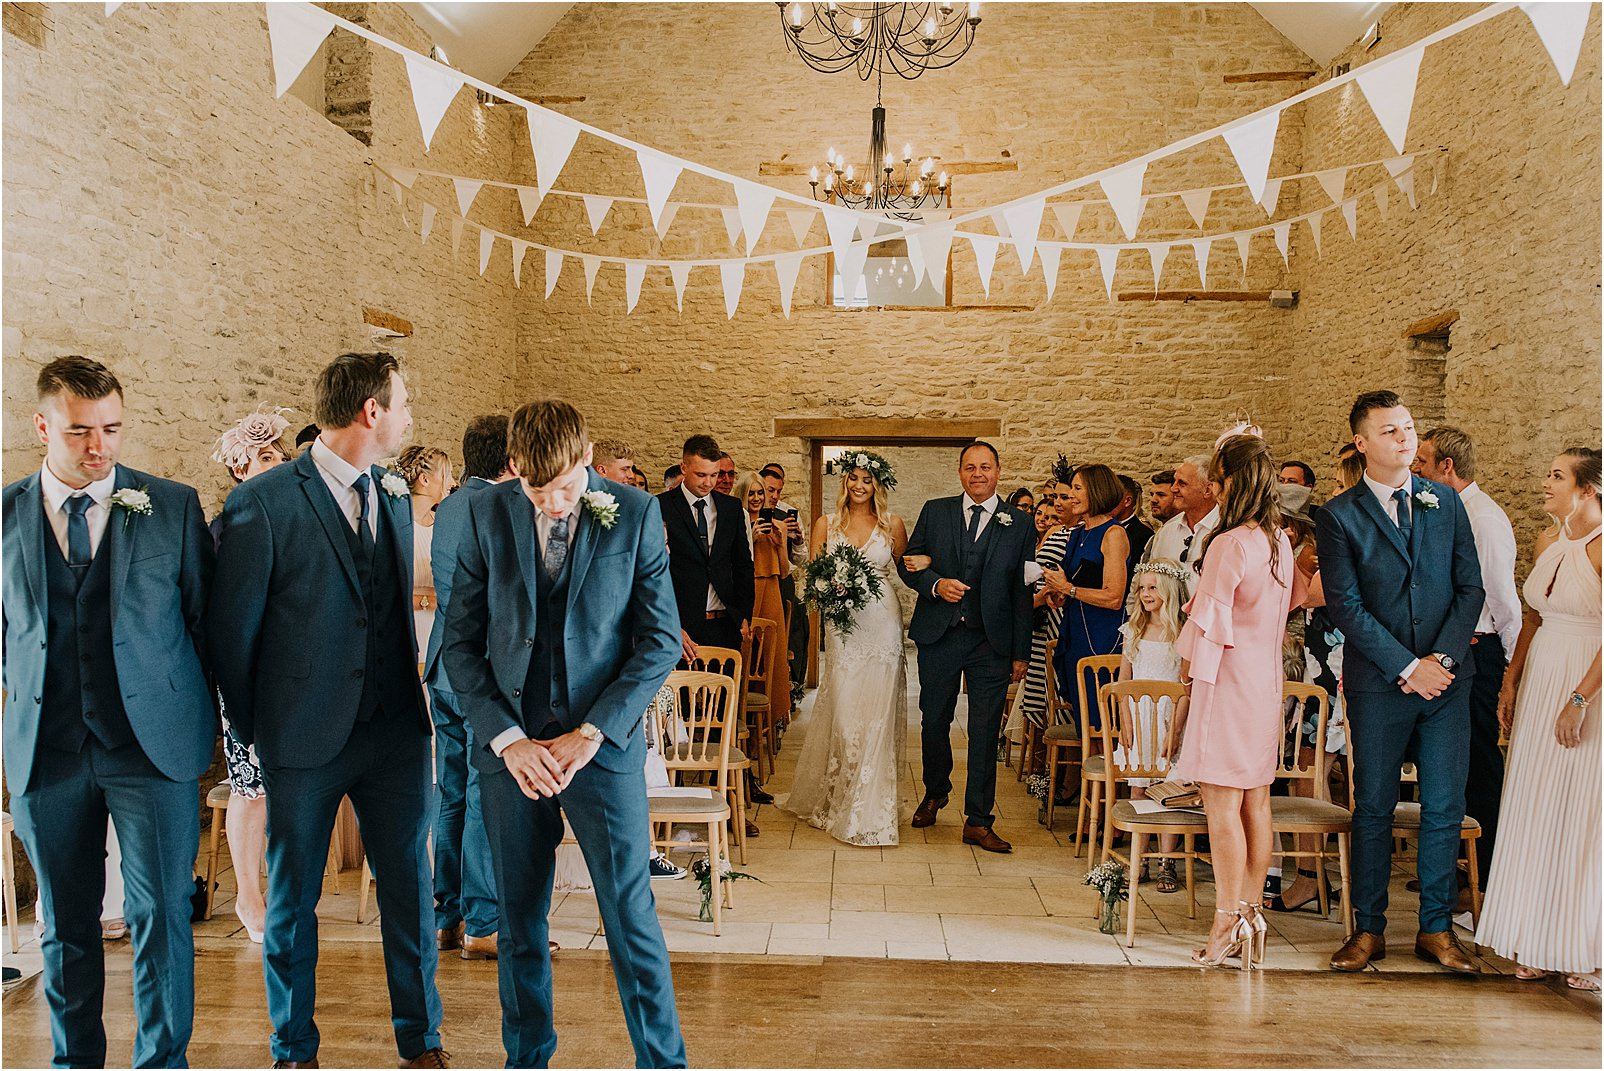 bride first walking in at Kingscote Barn ceremony